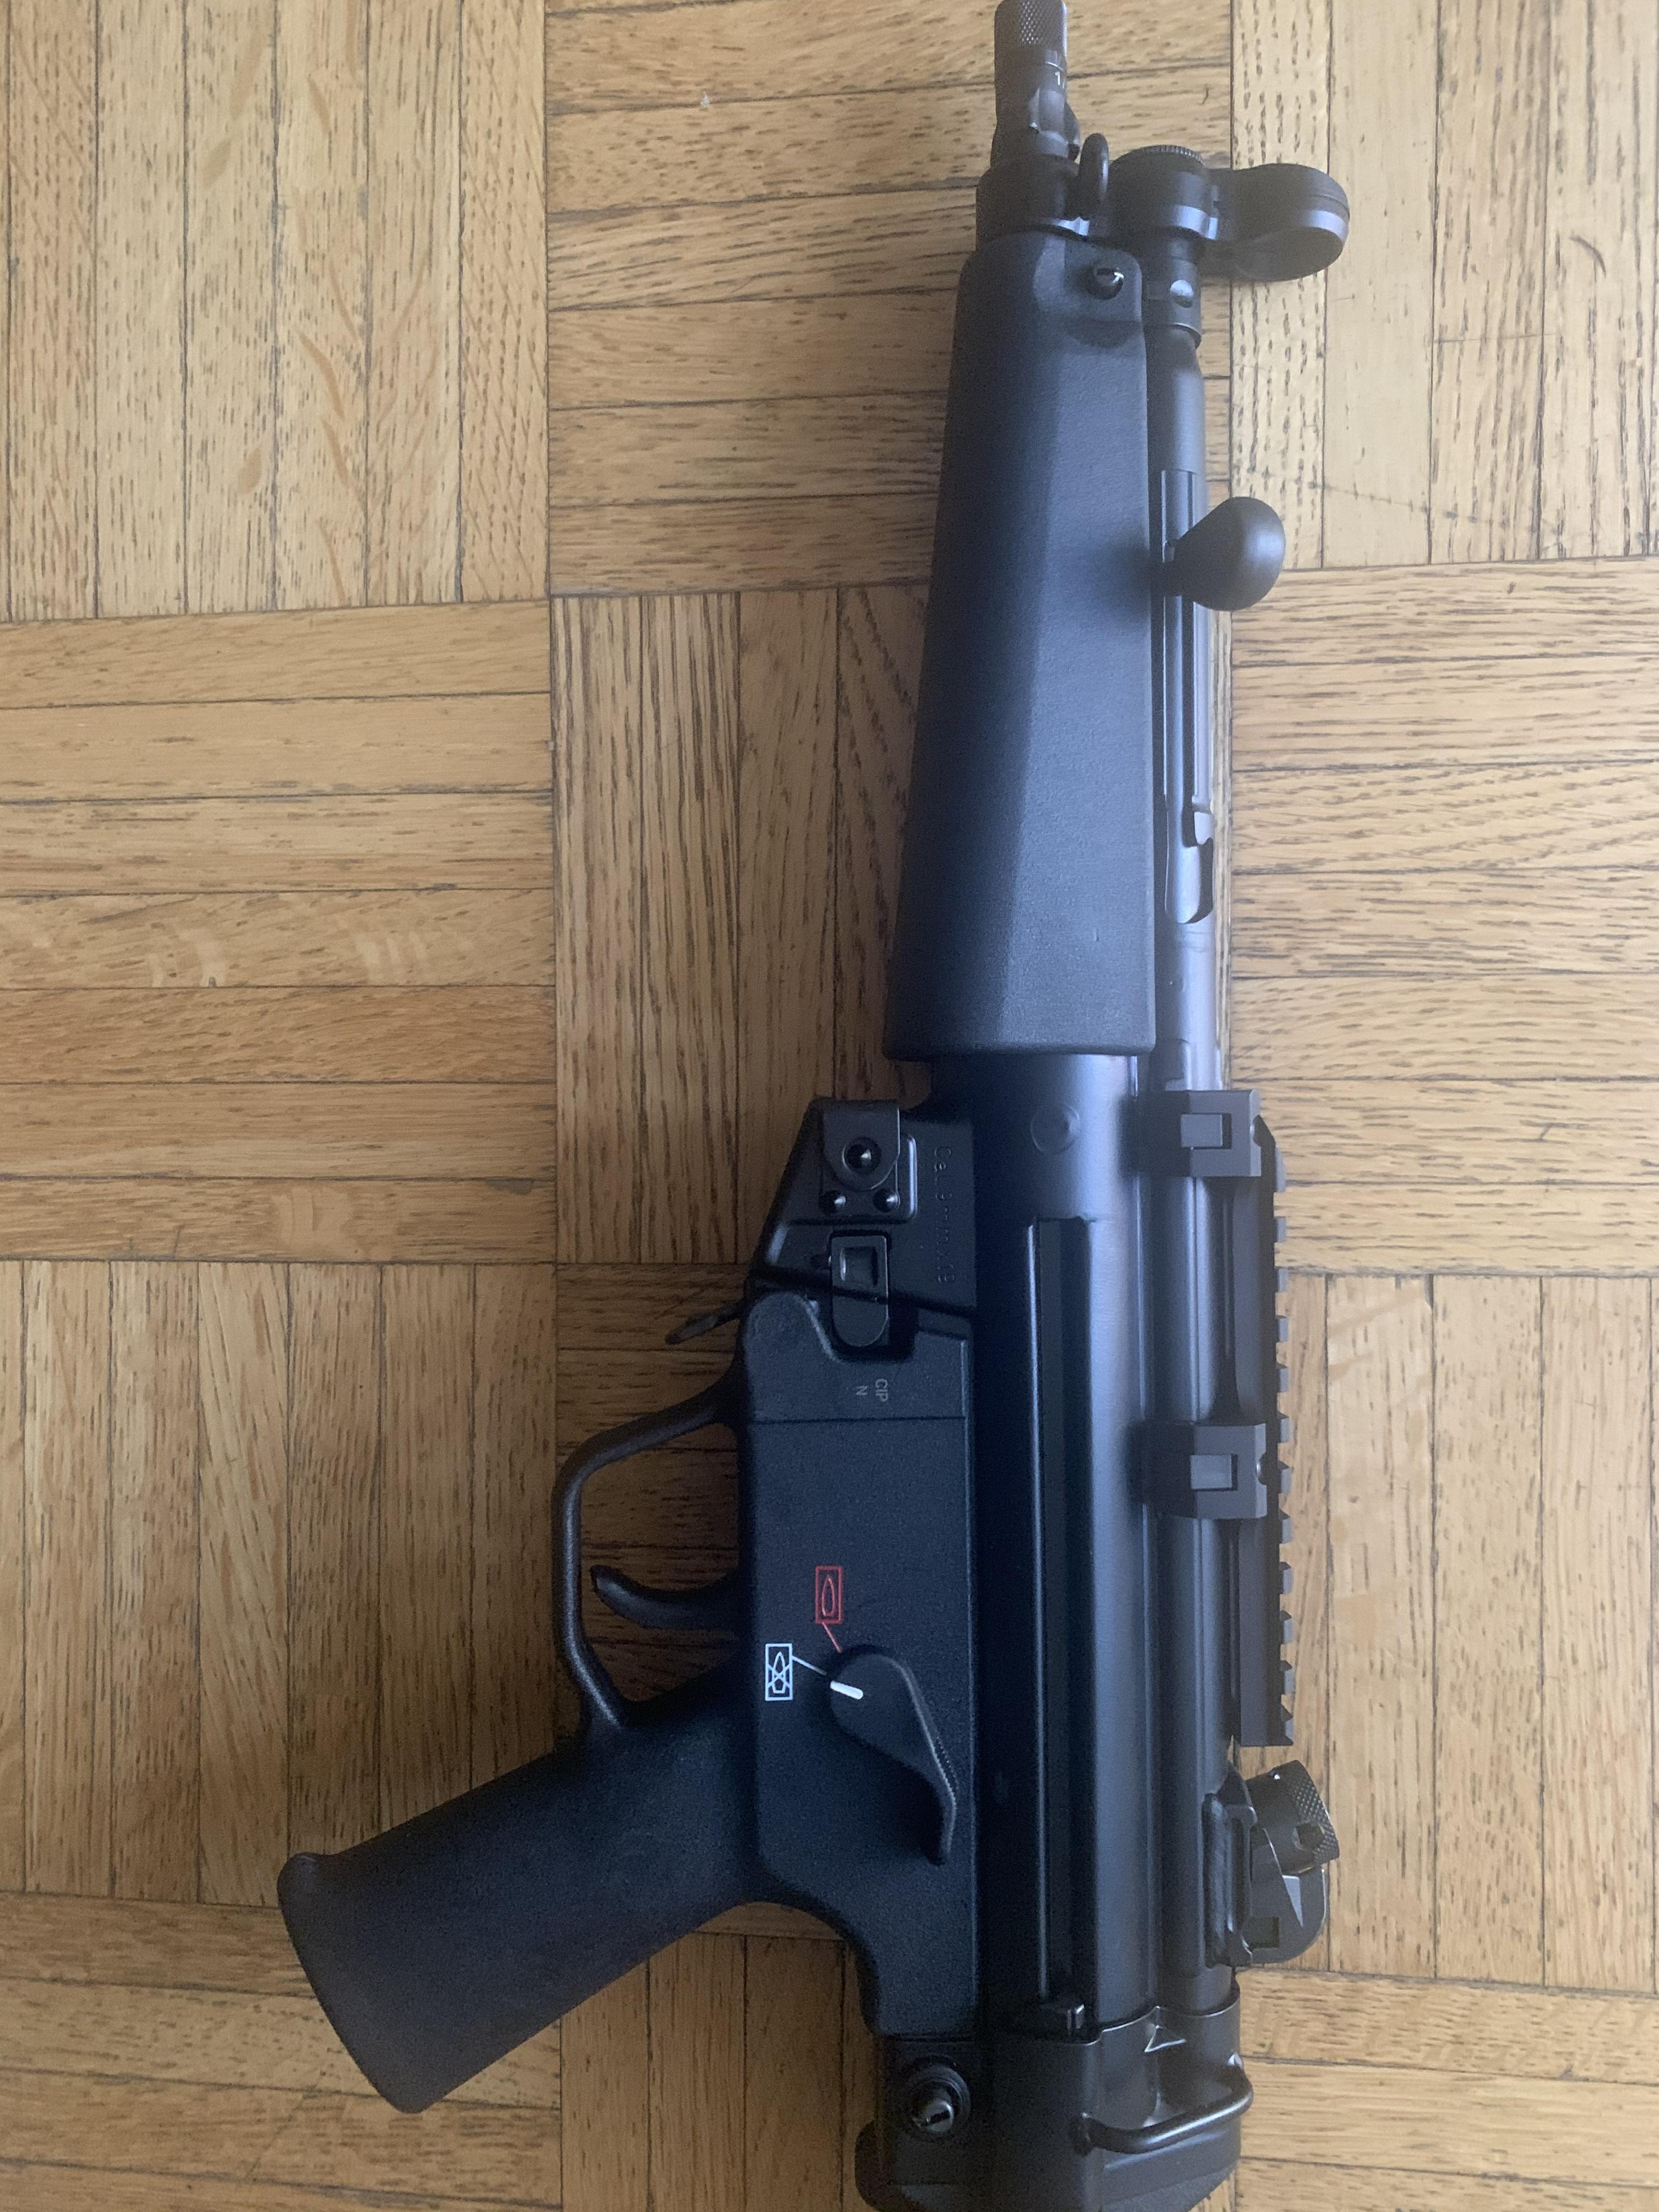 MP5 Red Dots, Mounts, and Co-Witness Thread-24e0bc73-81c9-40ba-b175-5a63a6952434_1592879989465.jpeg